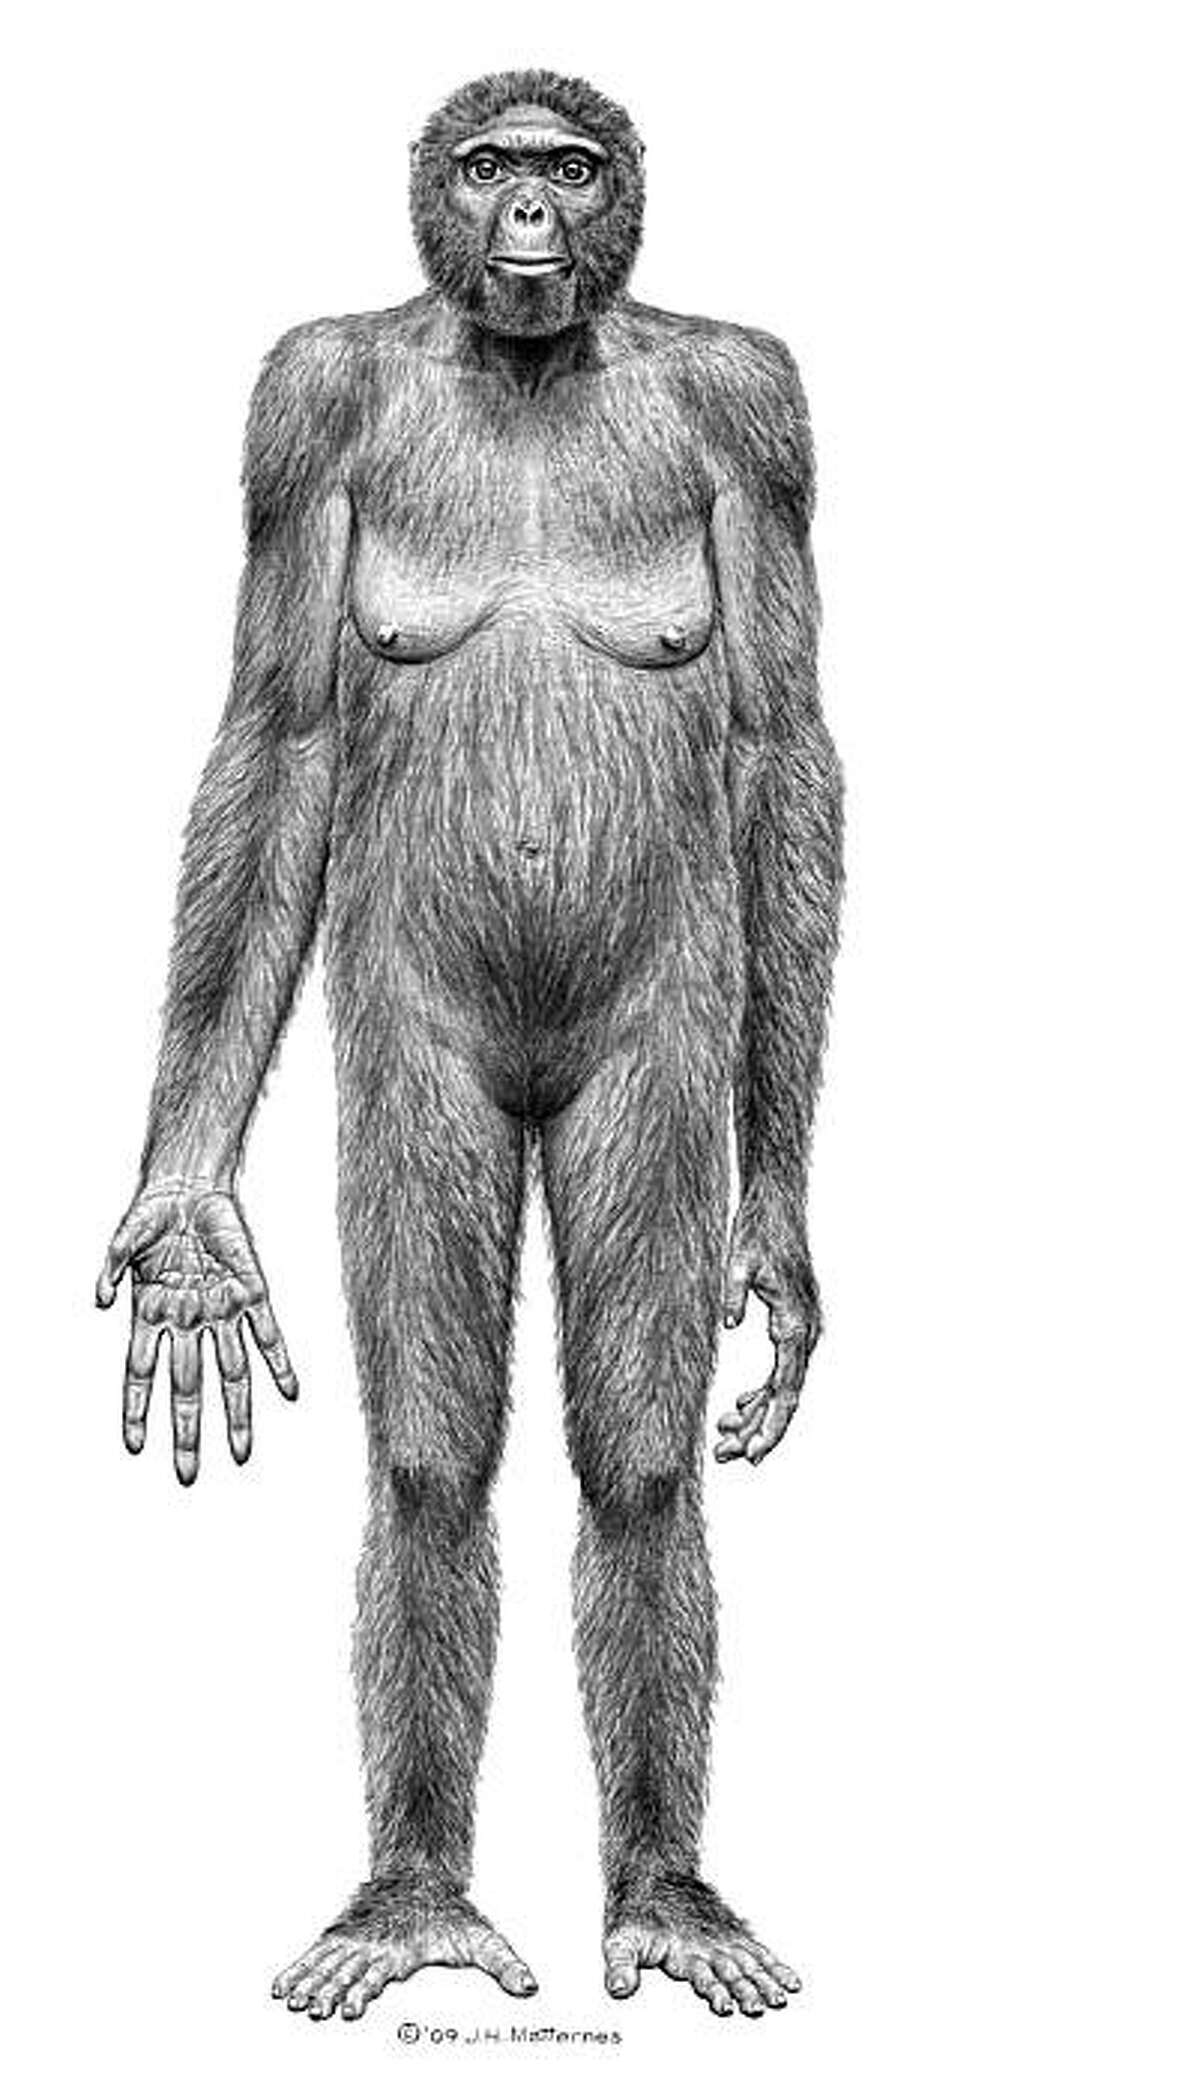 """This image released October 1, 2009 by """"Science"""" shows the probable life appearance in anterior view of Ardipithecuss ramidus(""""Ardi""""). In a special issue of Science, an international team of scientists has for the first time thoroughly described Ardipithecus ramidus, a hominid species that lived 4.4 million years ago in what is now Ethiopia. This research, in the form of 11 detailed papers and more general summaries, will appear in the journal's October 2, 2009 issue. AFP PHOTO/HO/SCIENCE/J.H. Mattemes = RESTRICTED TO EDITORIAL USE = No ARCHIVES = (Photo credit should read HO/AFP/Getty Images)"""